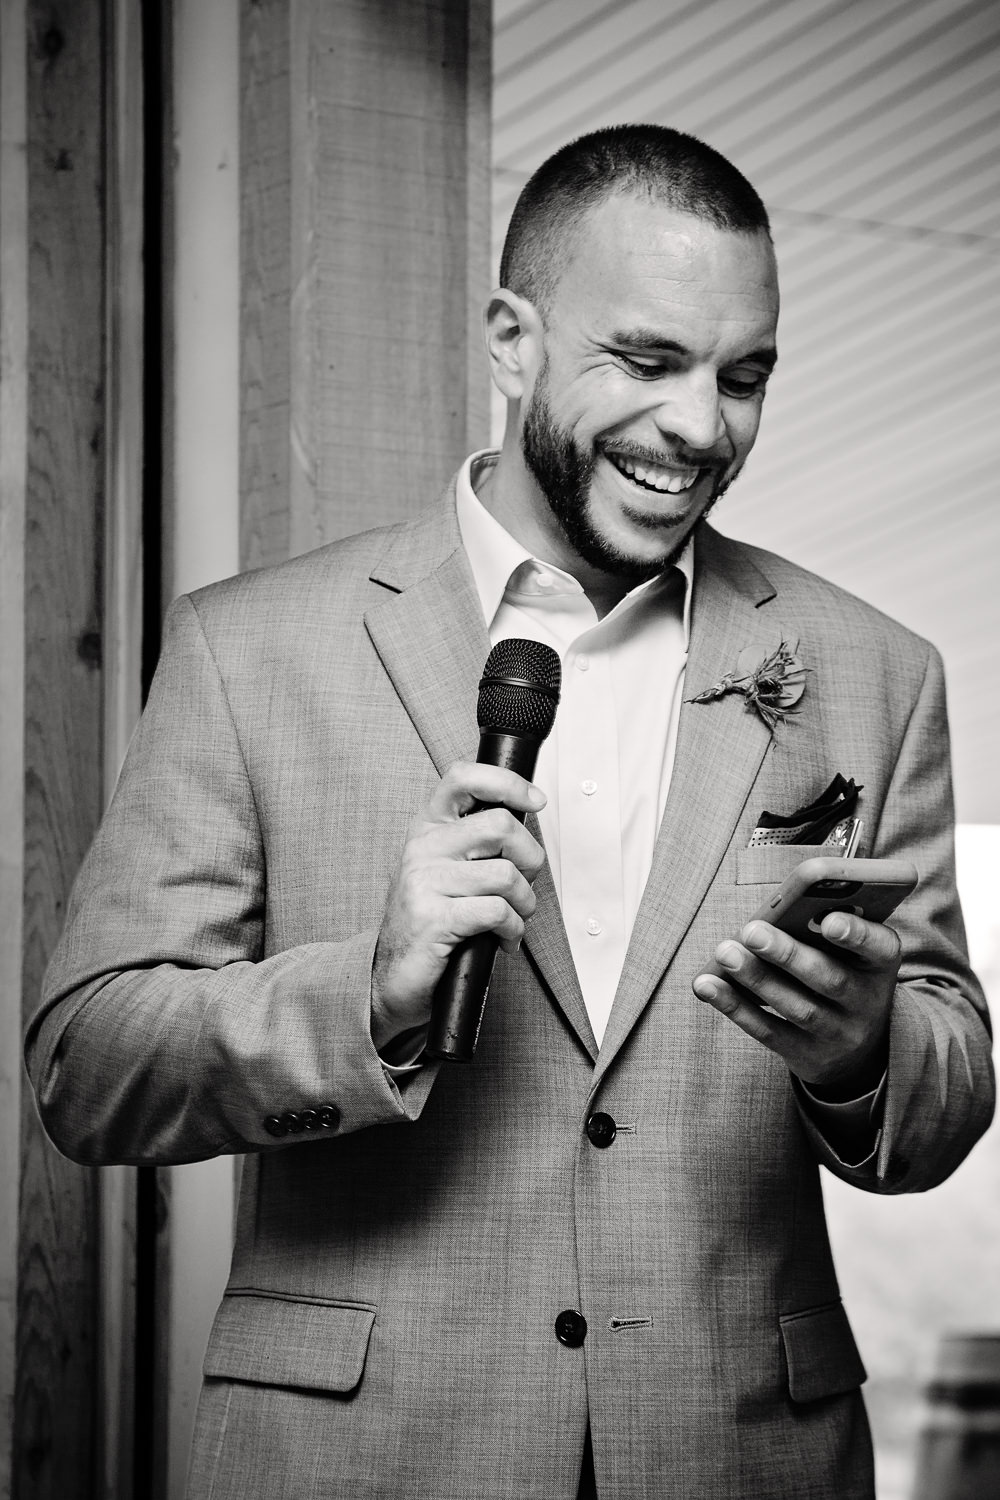 bozeman-hart-ranch-wedding-grooms-best-man-toast.jpg